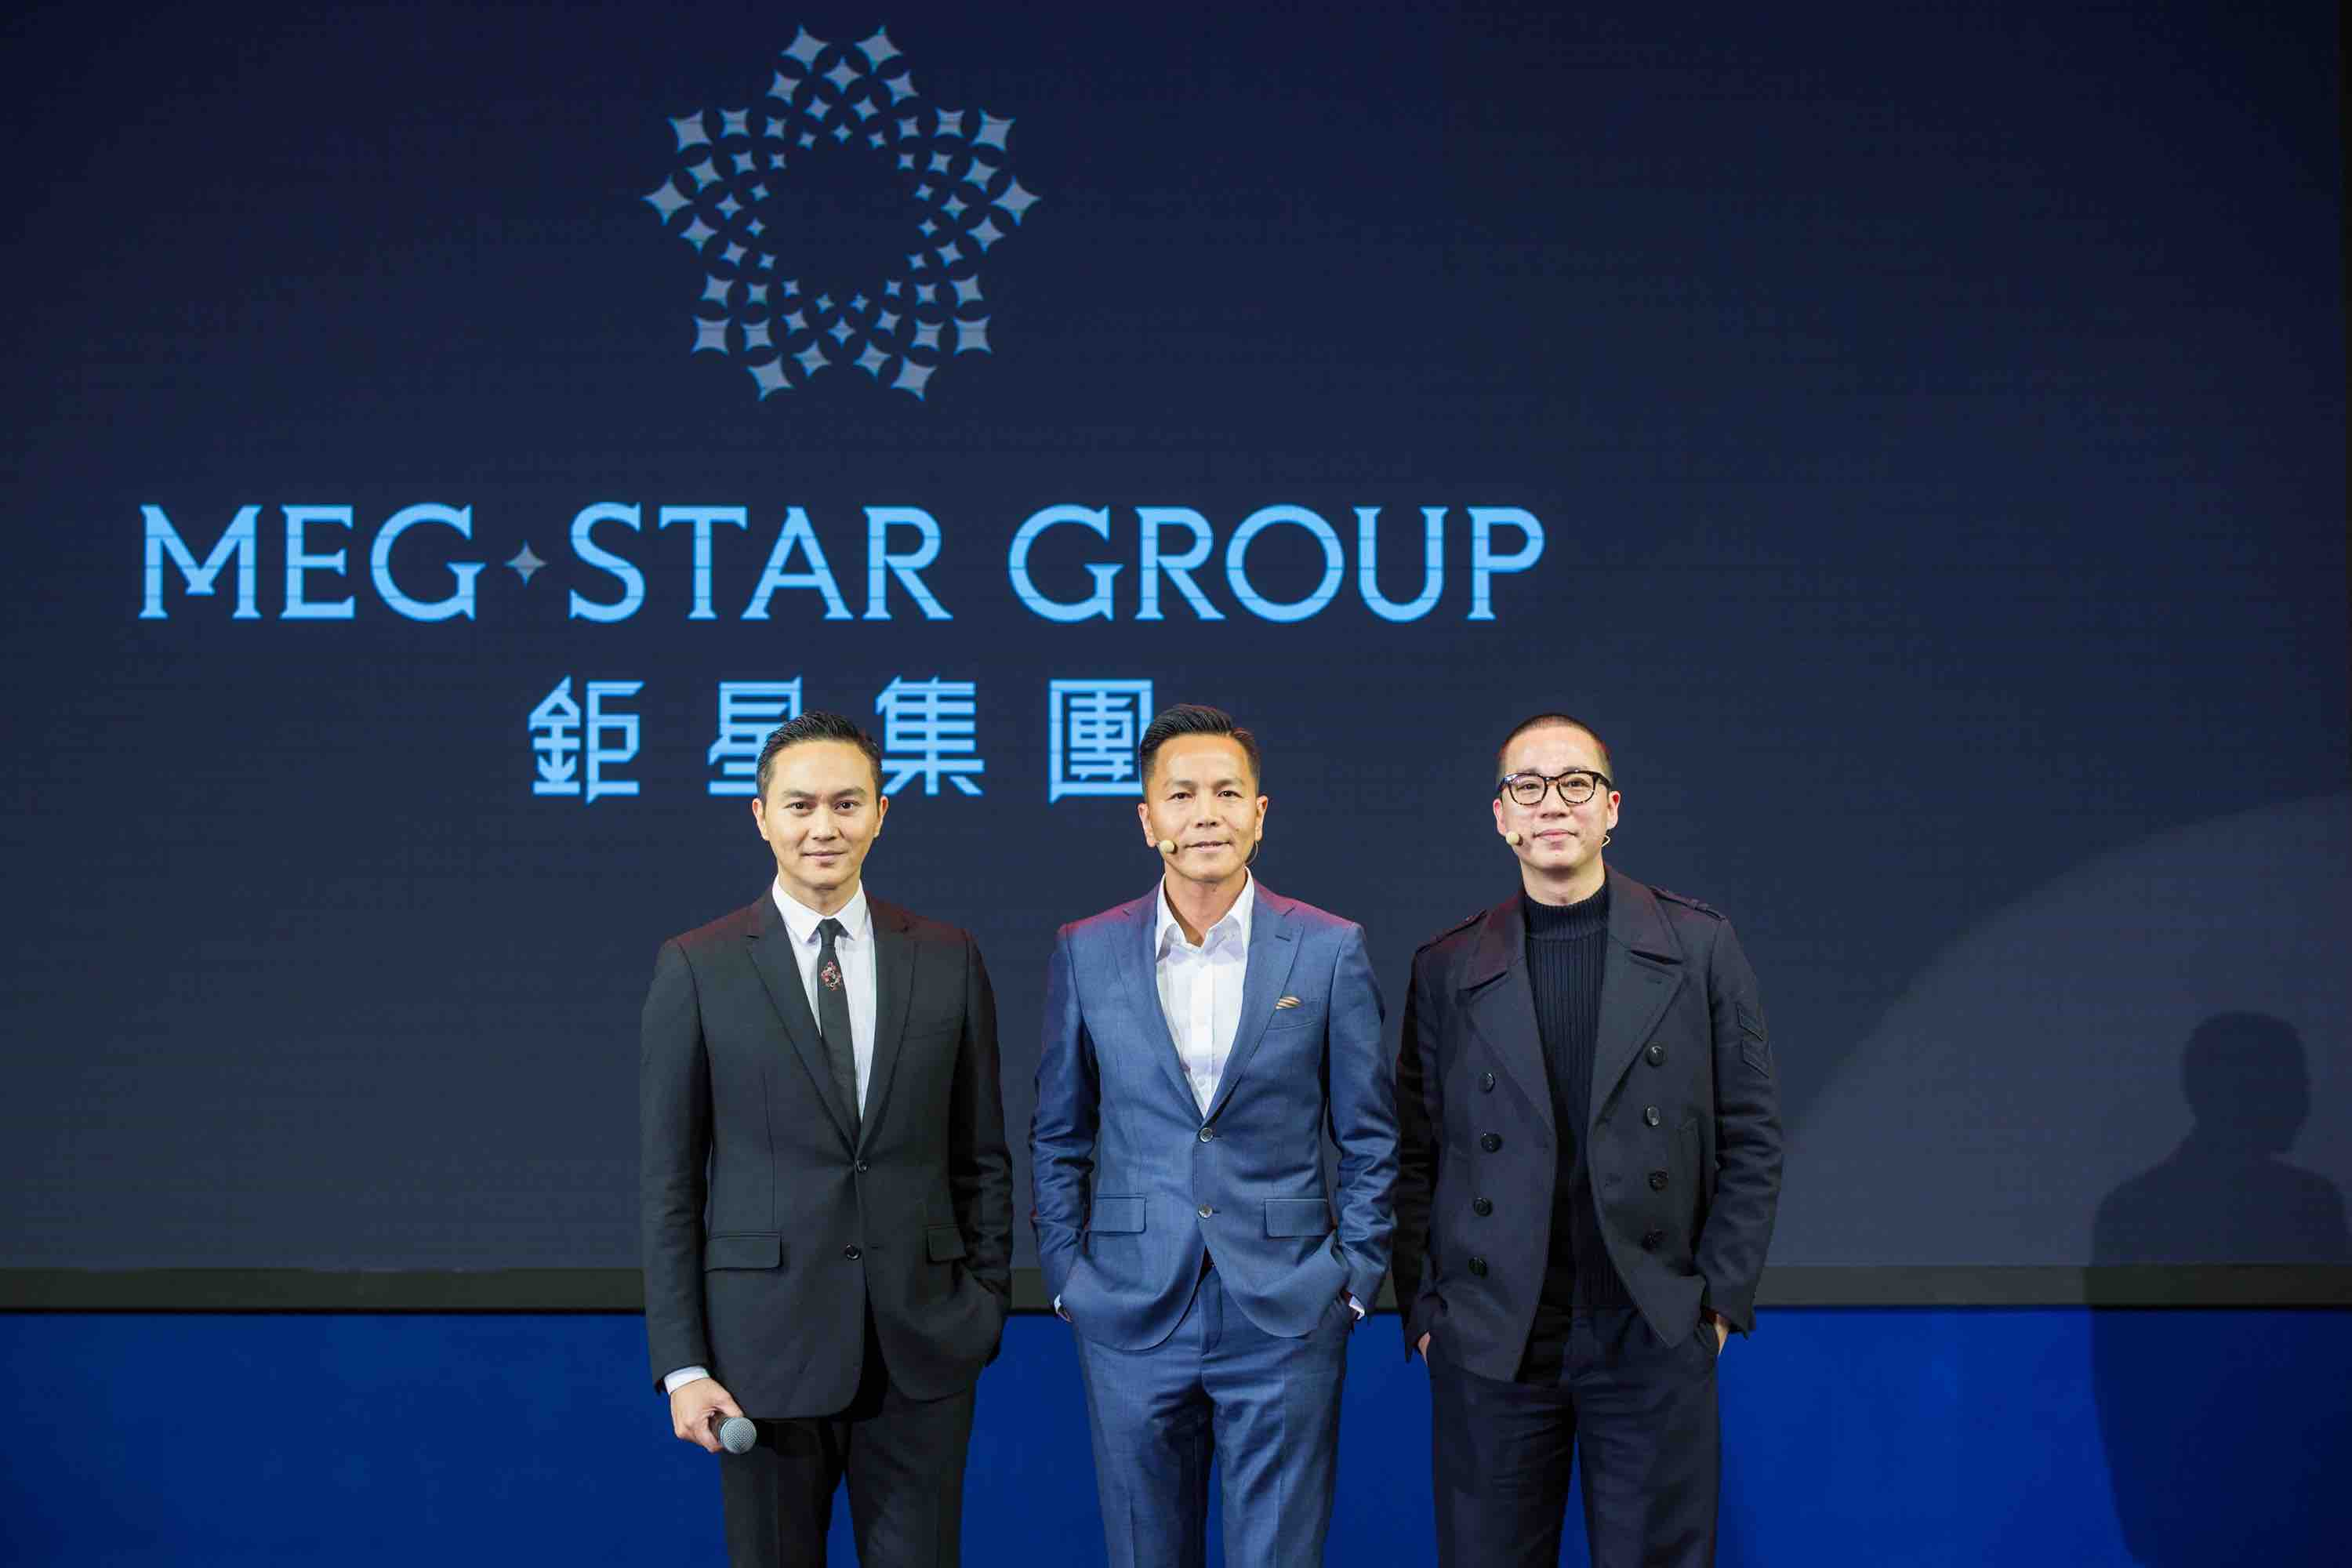 Macau junket Meg-Star Intl announces new brand image